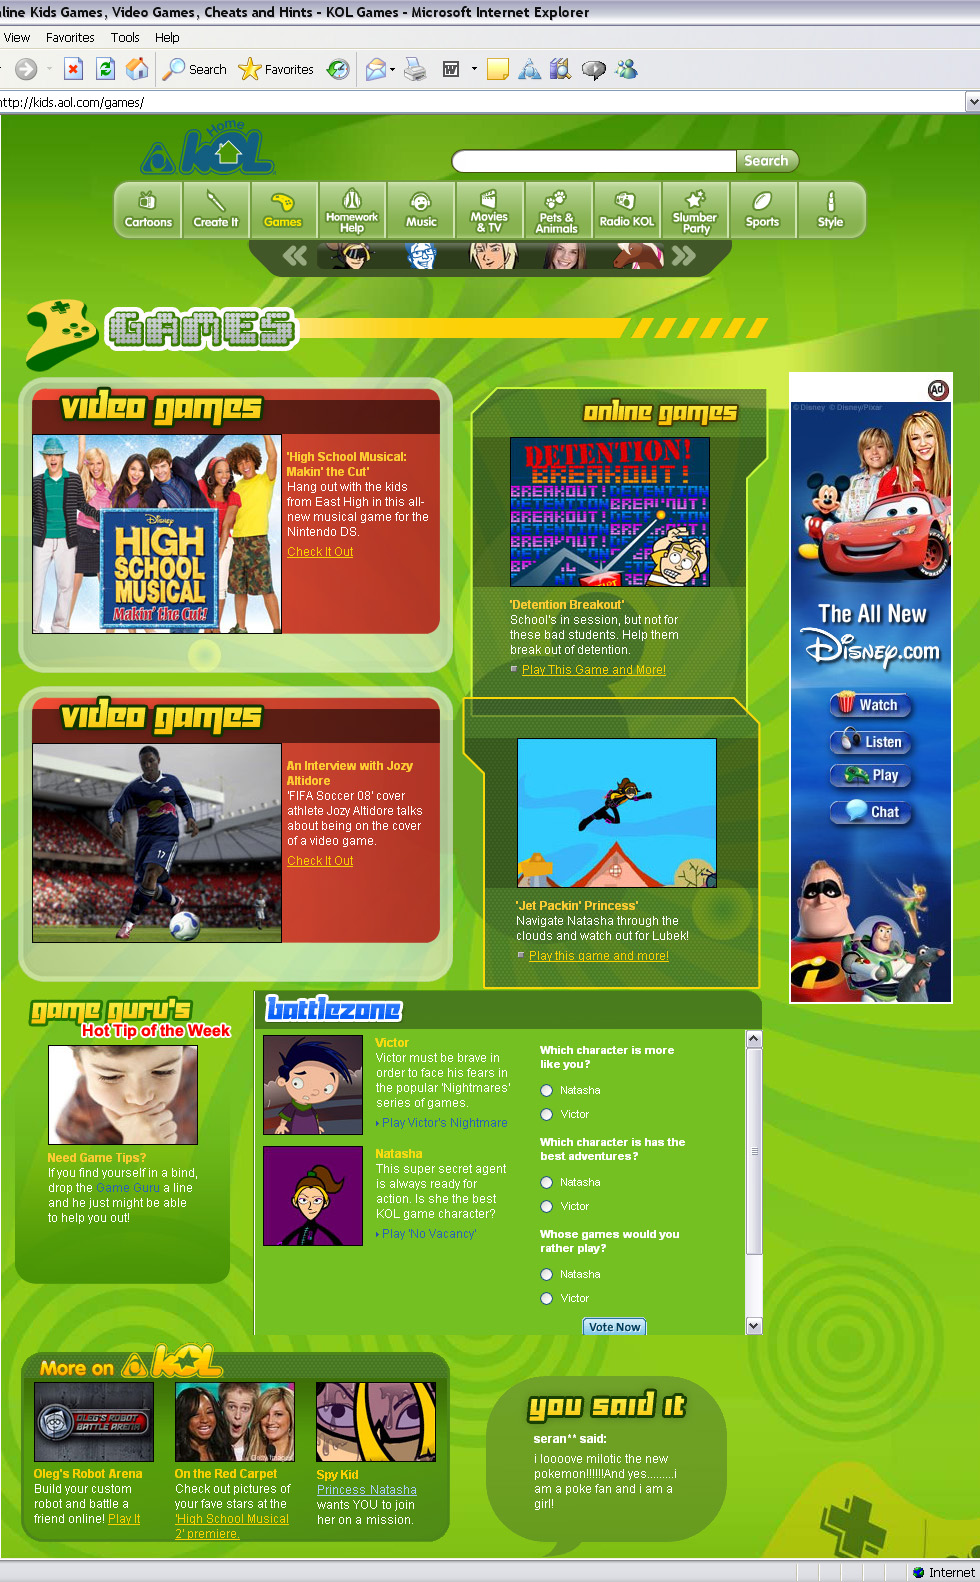 KOL Games v3 (AOL Kids)